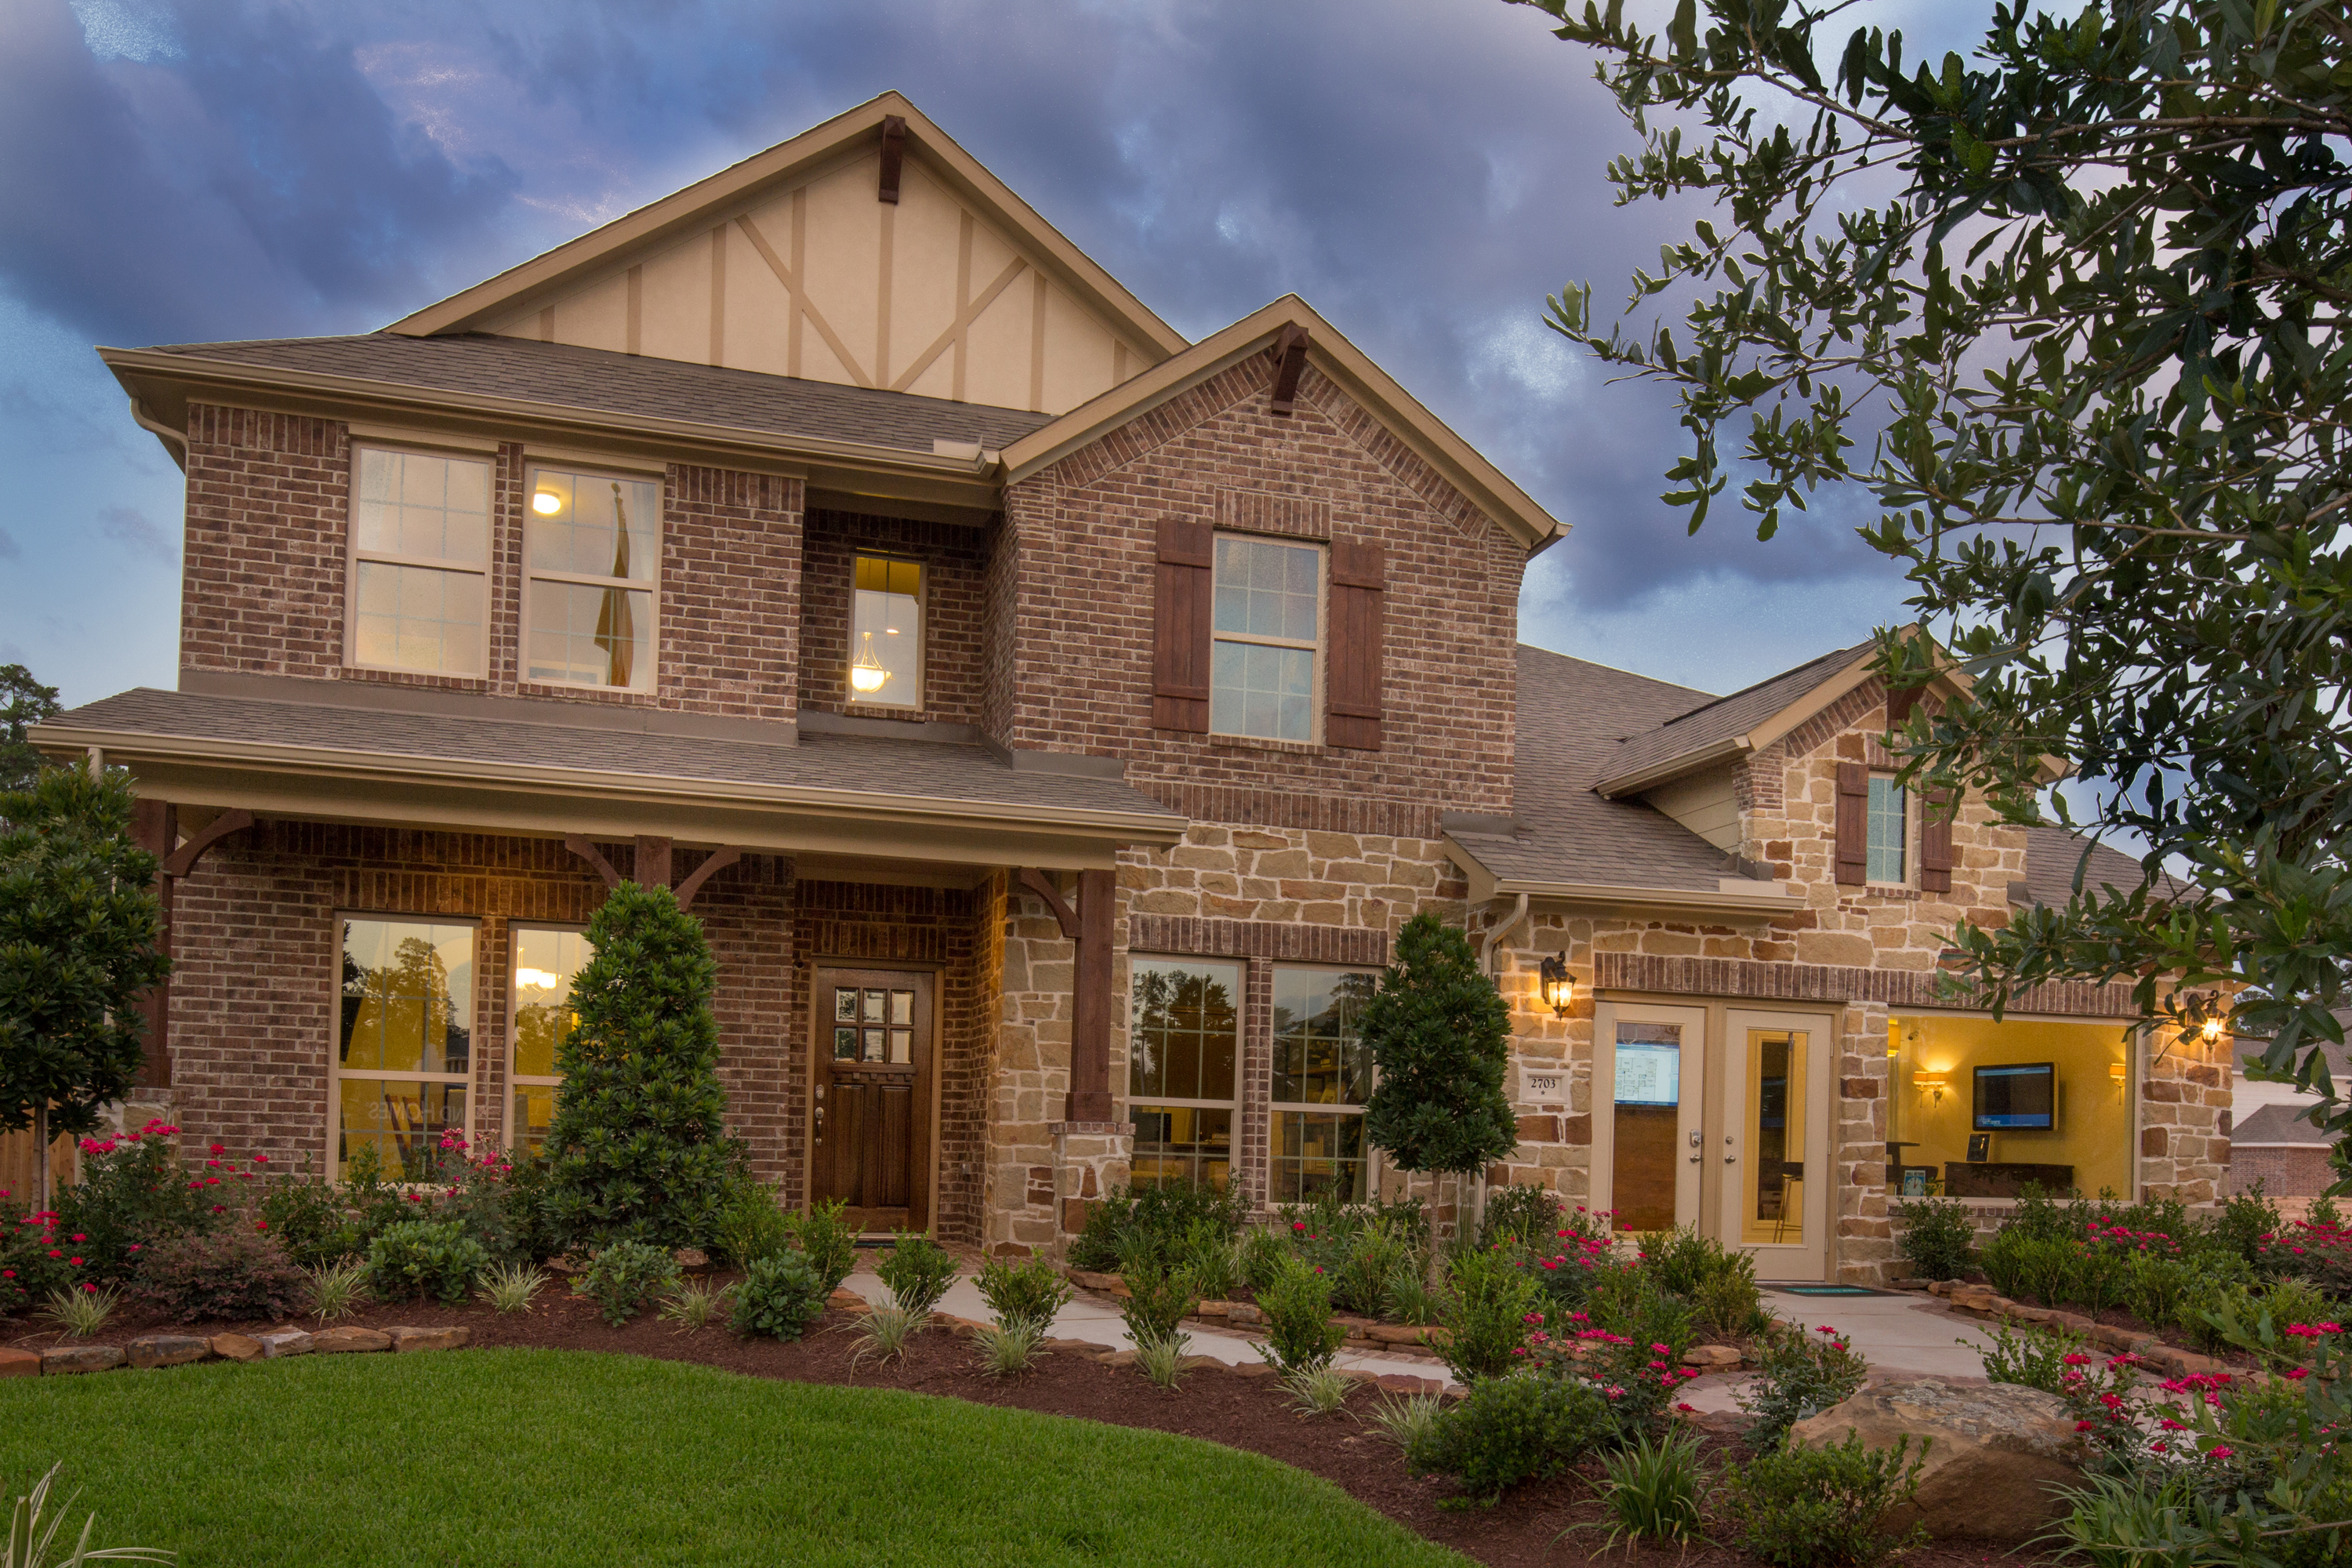 Ryland Homes is Expanding in the Houston Area with the Grand ... on kb homes houston floor plans, lennar homes houston floor plans, perry homes houston floor plans, lgi homes houston floor plans, legend homes houston floor plans,